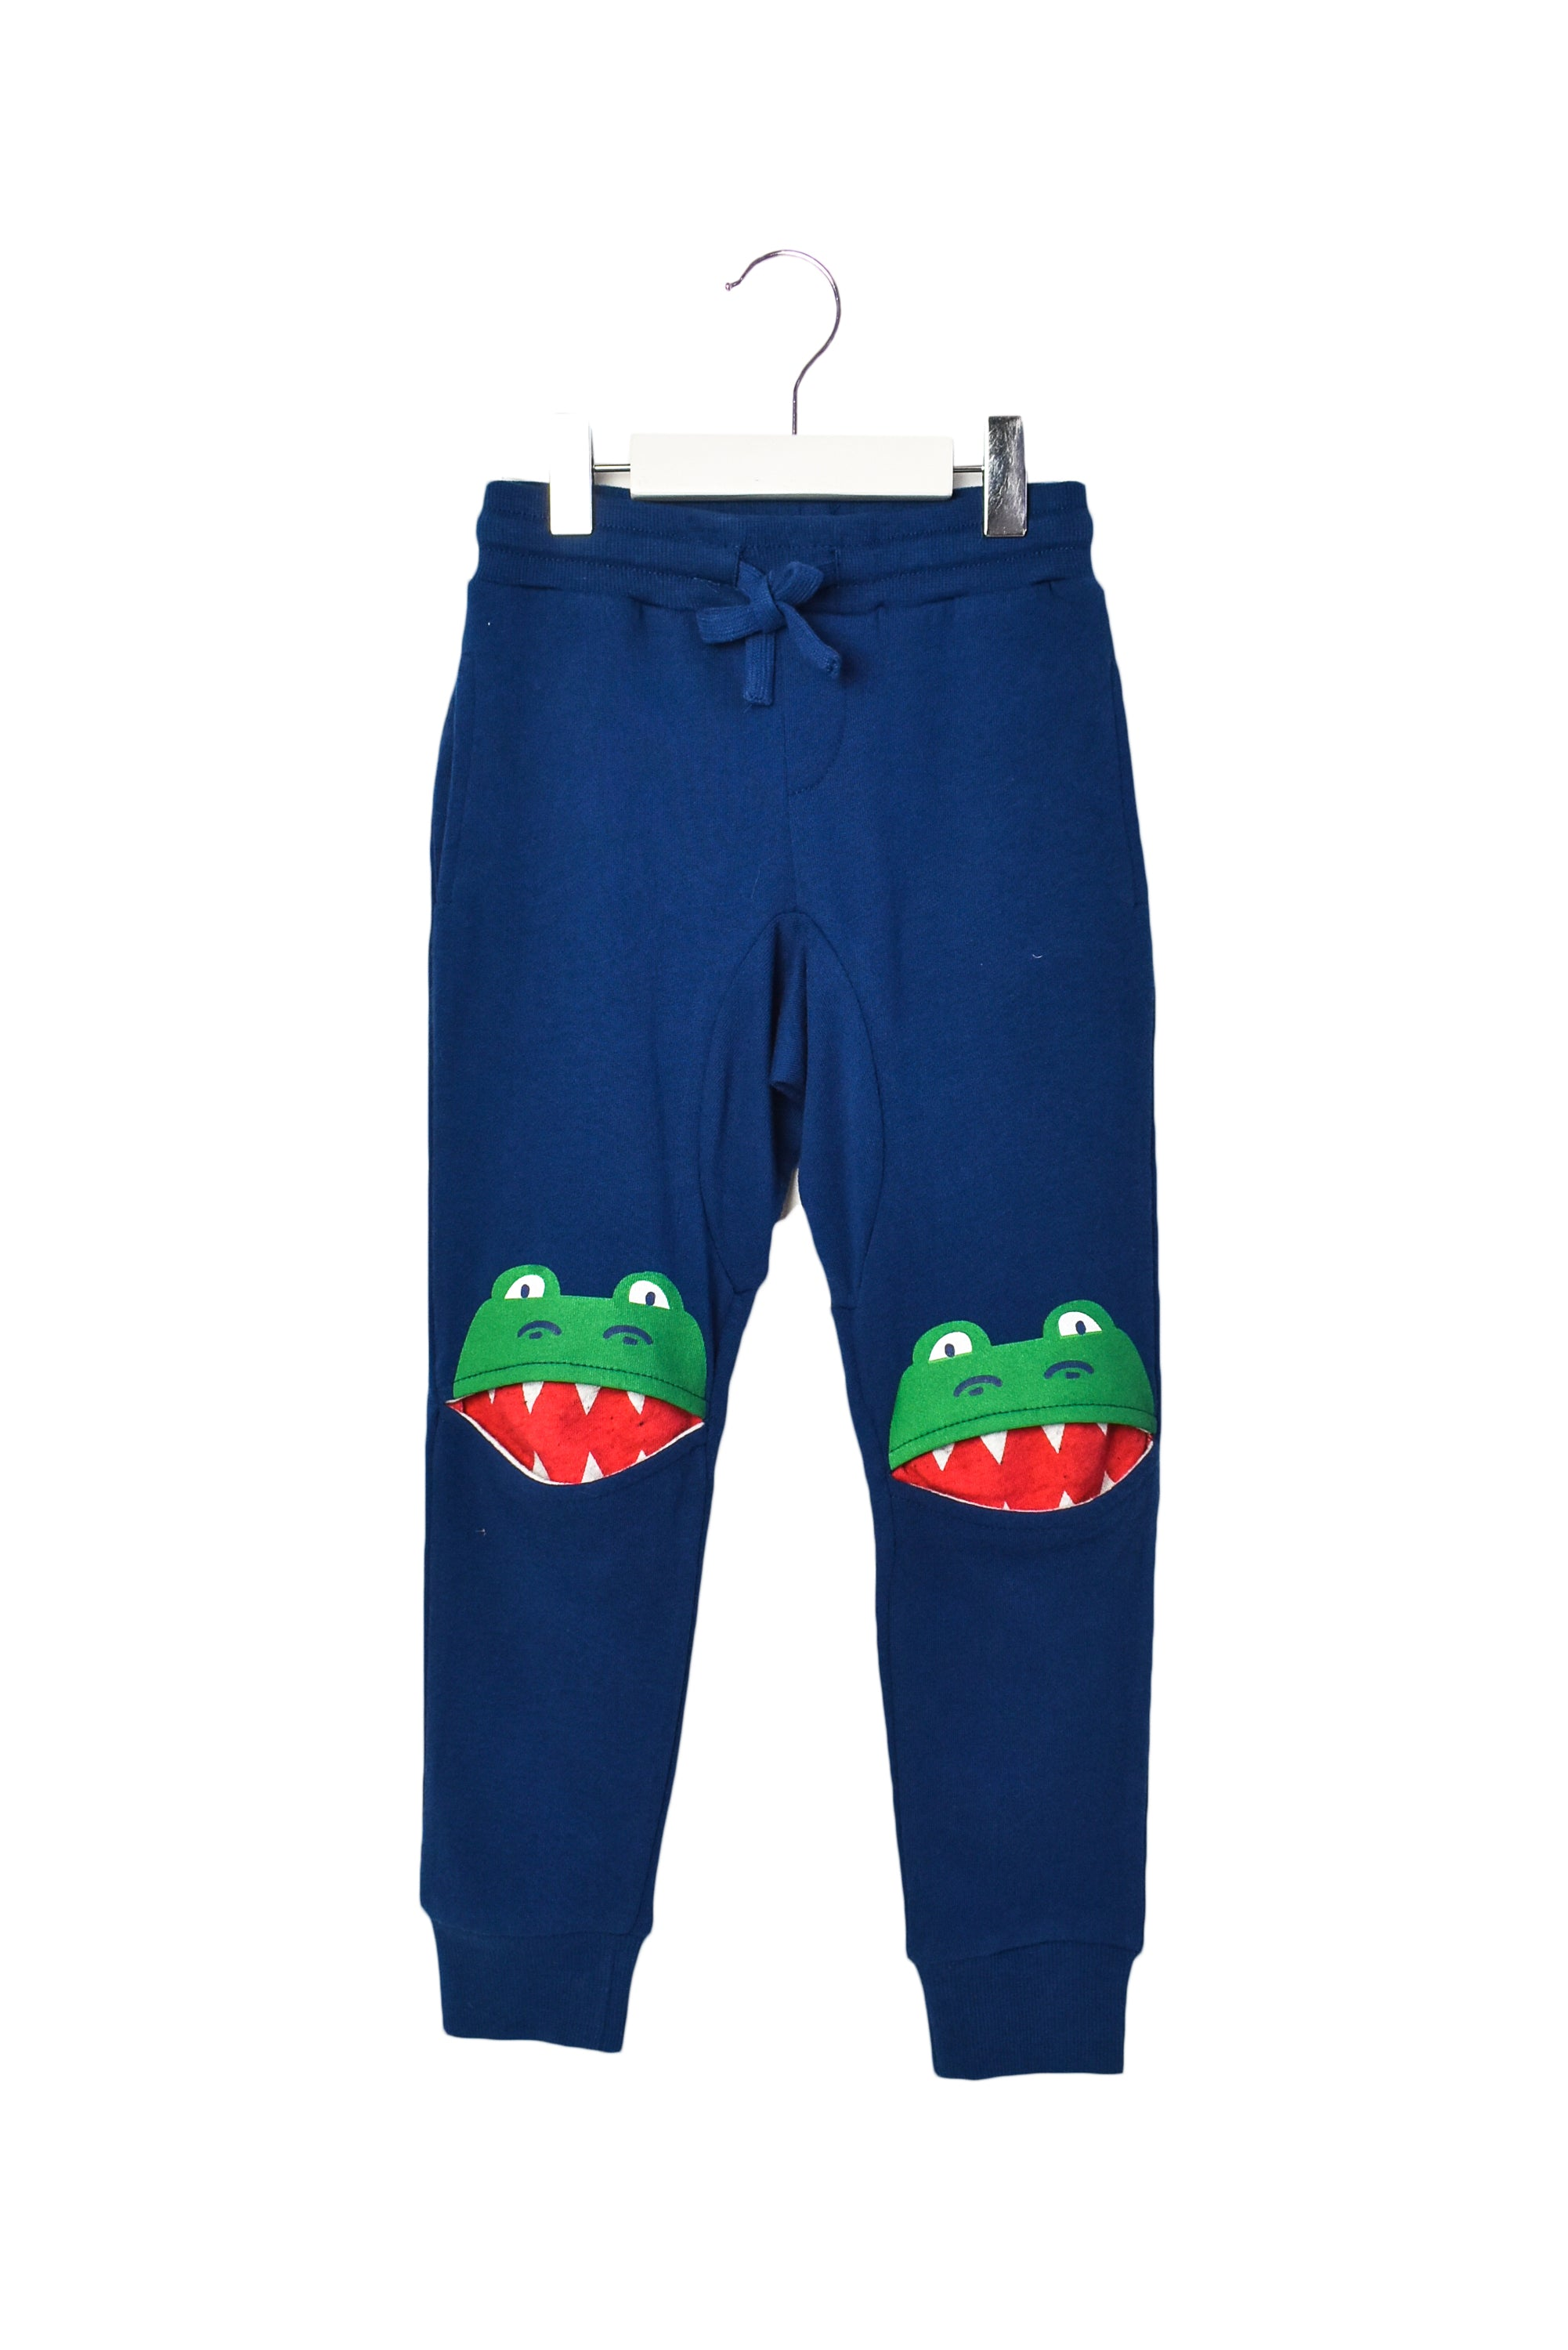 10006498 Seed Kids~Pants 3-4T at Retykle